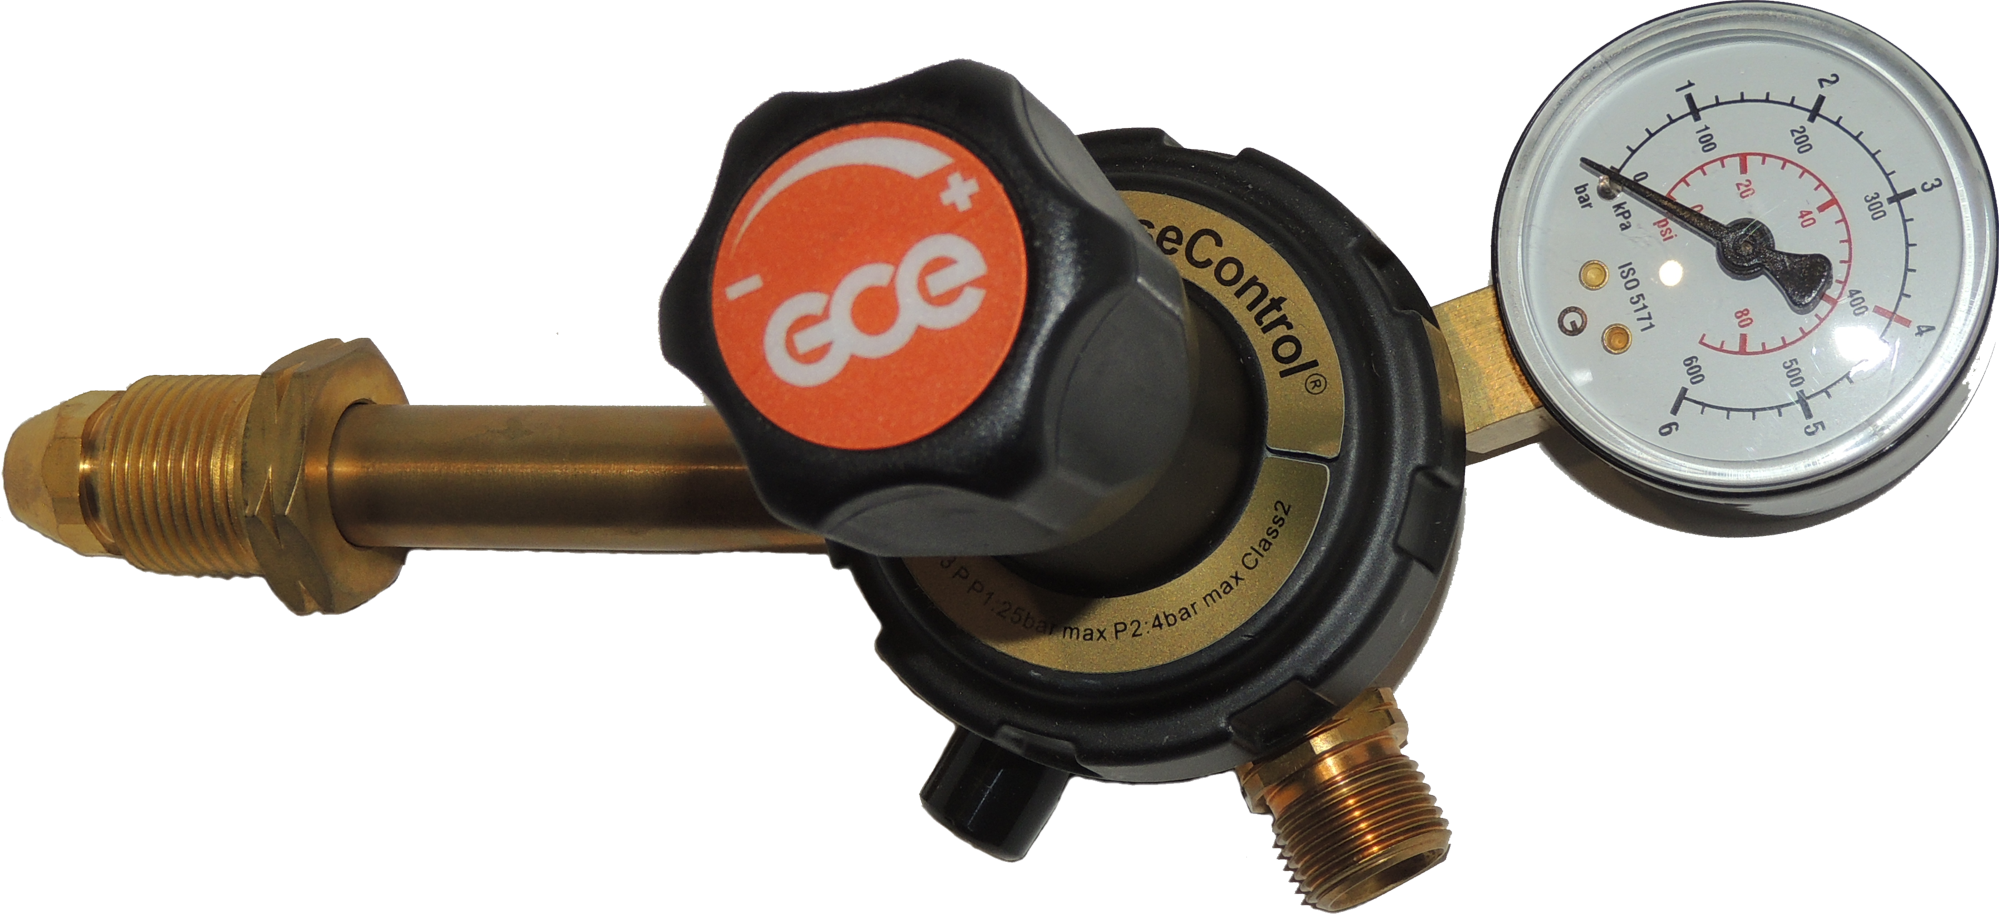 GCE - Propane Regulator 1 Gauge 0-4 bar